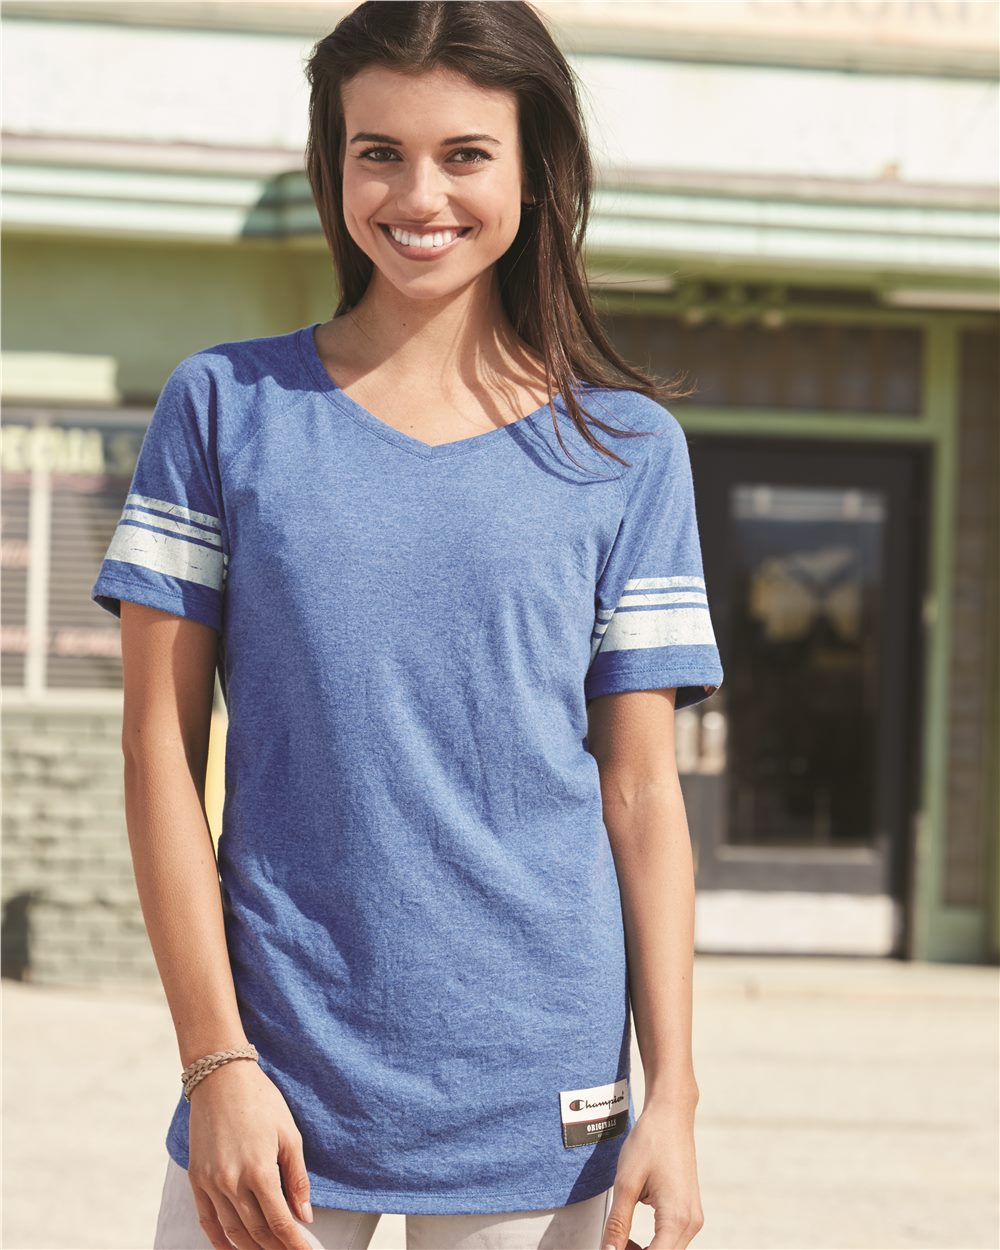 Champion AO350 - Authentic Originals Women's Triblend Varsity Tee